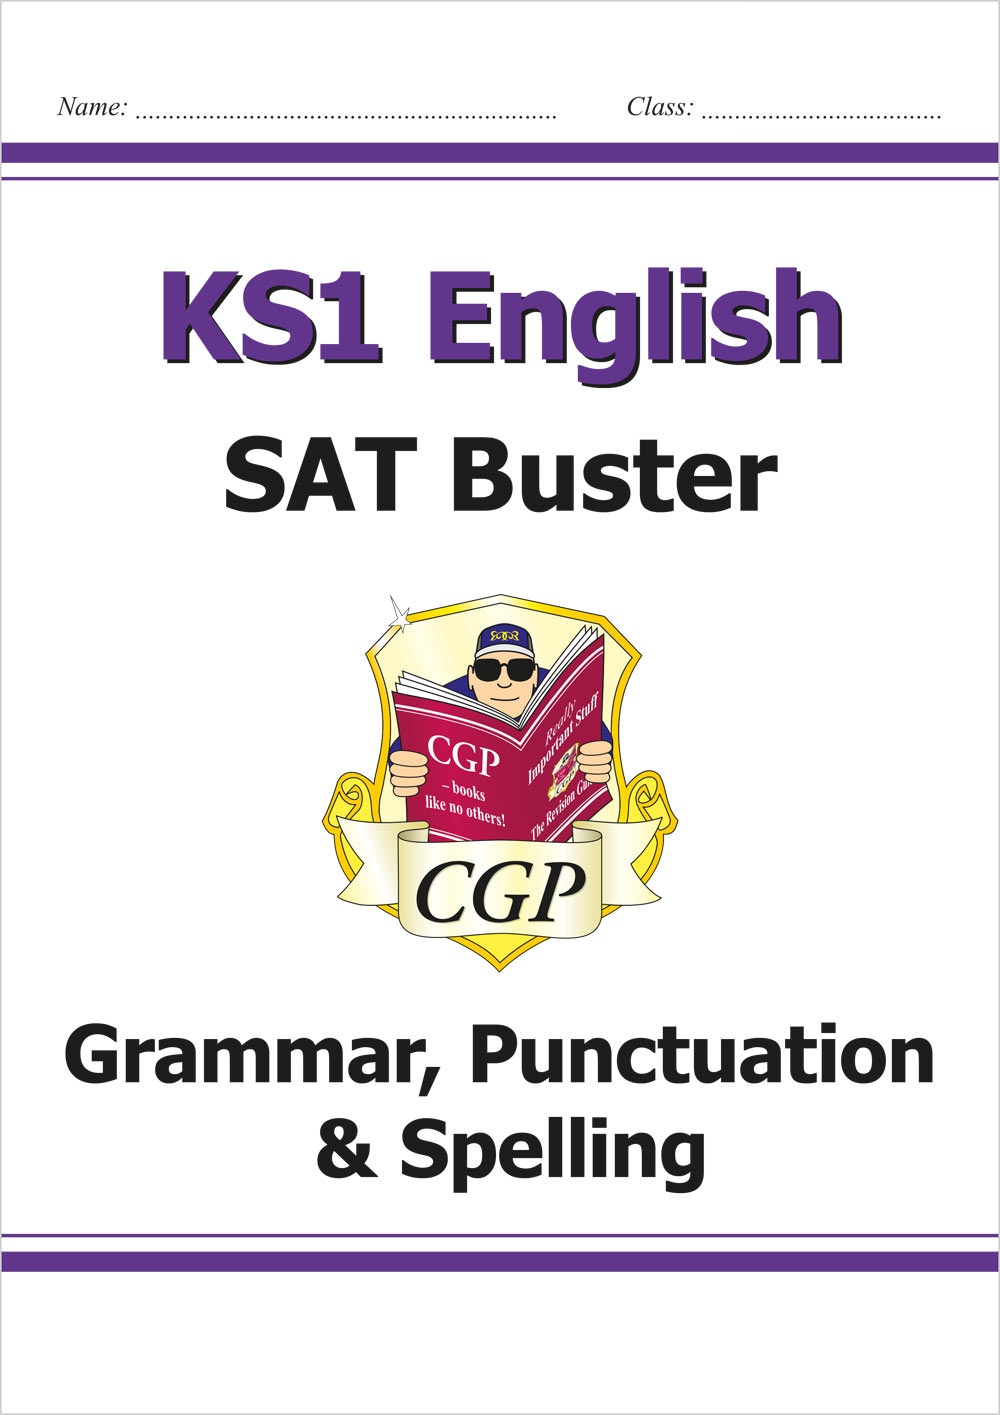 E2G11 - KS1 English SAT Buster: Grammar, Punctuation & Spelling (for the 2019 tests)